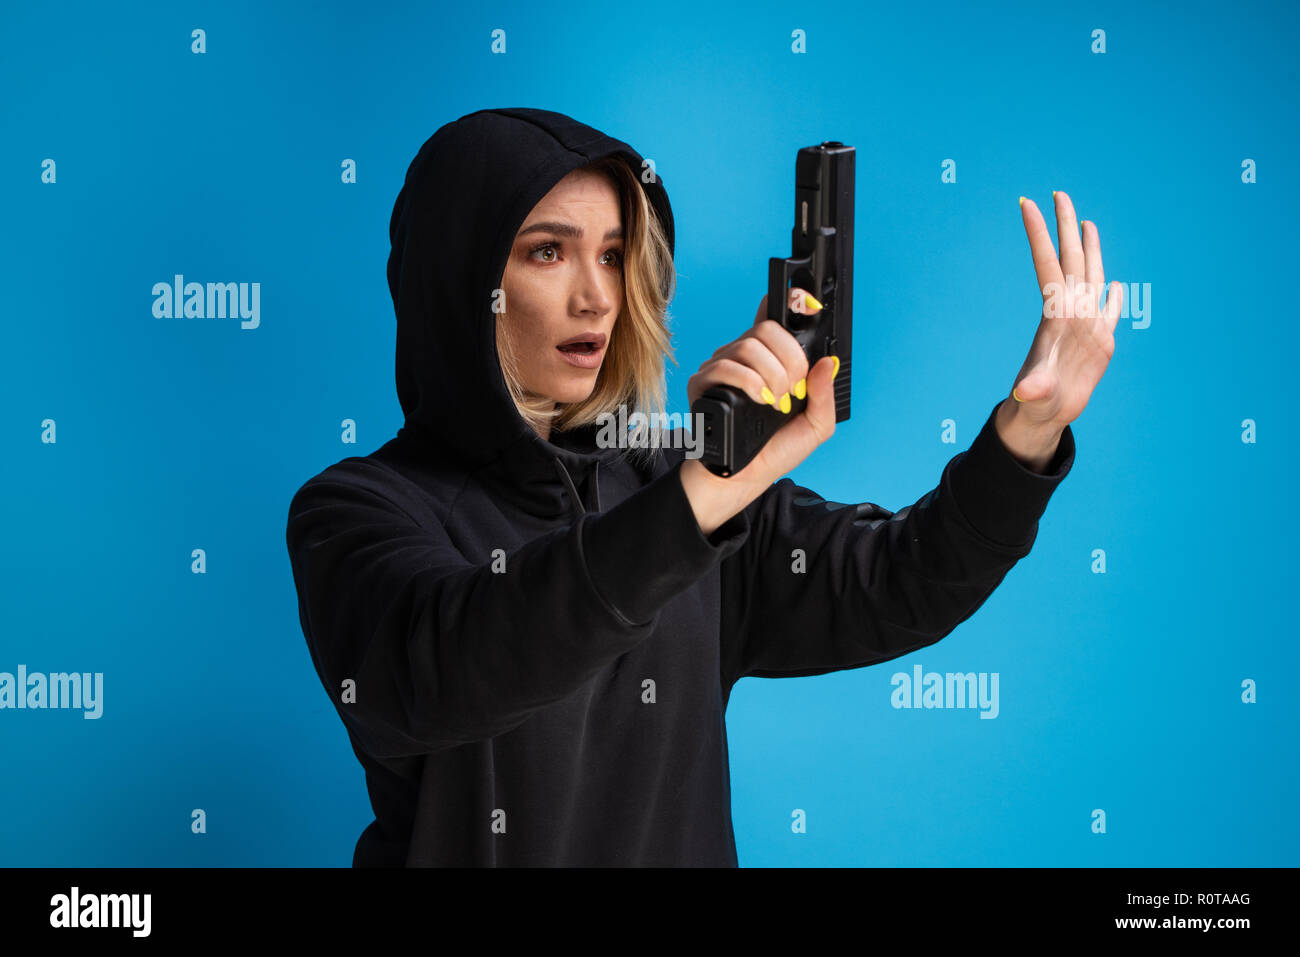 Hooded young girl presenting gun while surrendering. Airsoft game loser Stock Photo